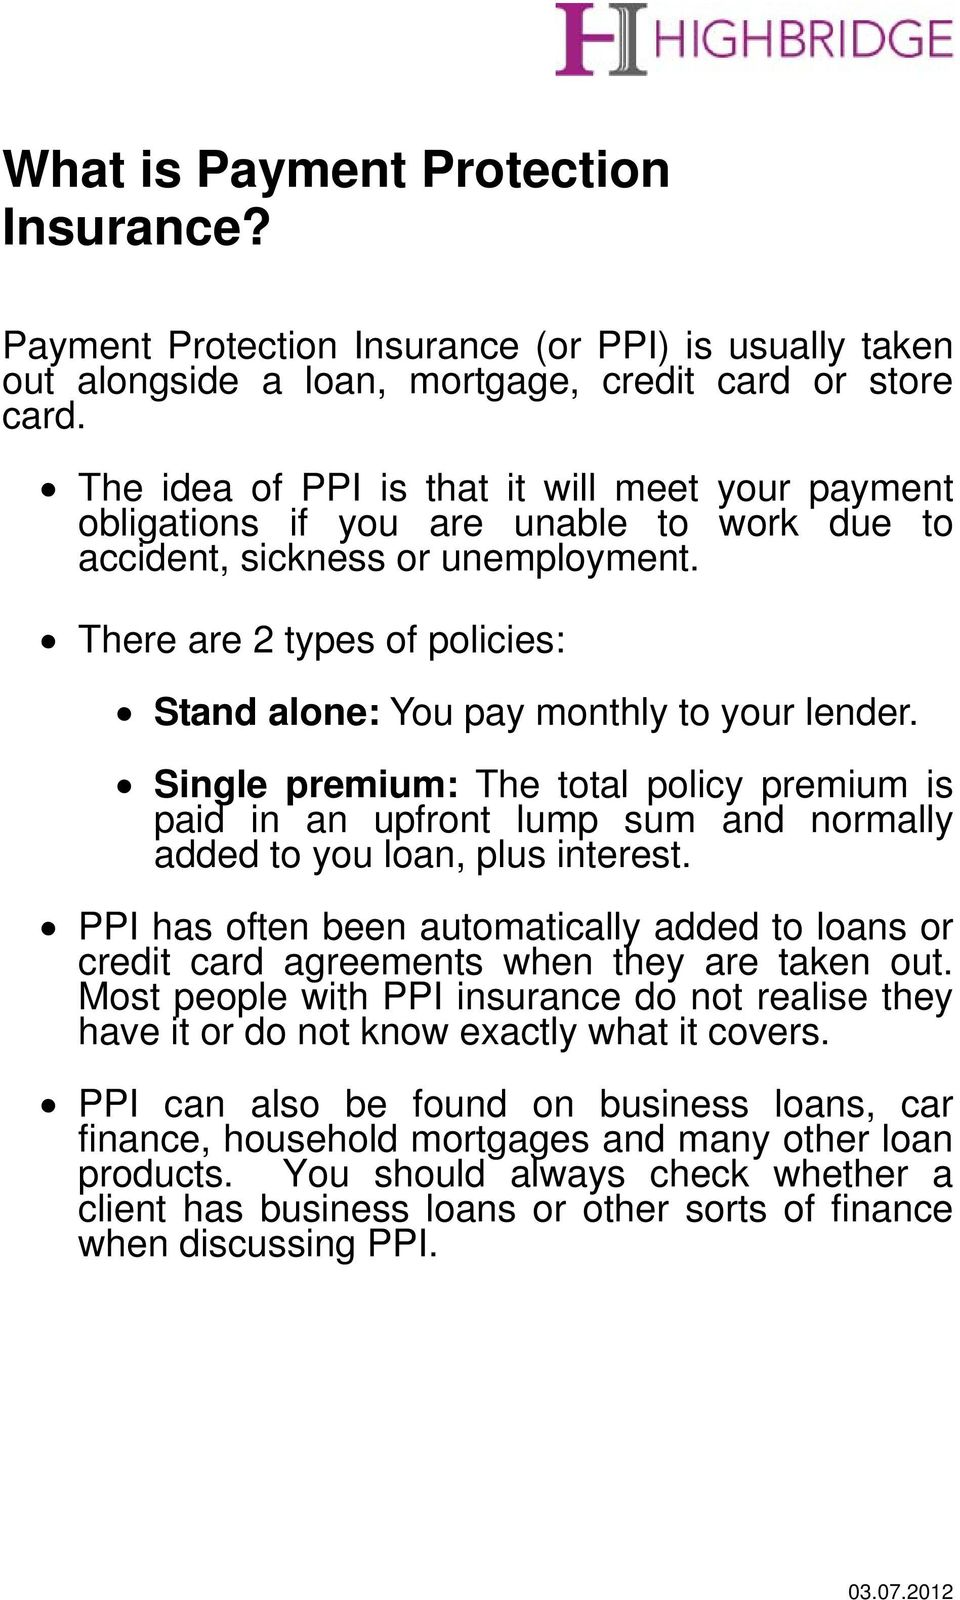 There are 2 types of policies: Stand alone: You pay monthly to your lender. Single premium: The total policy premium is paid in an upfront lump sum and normally added to you loan, plus interest.